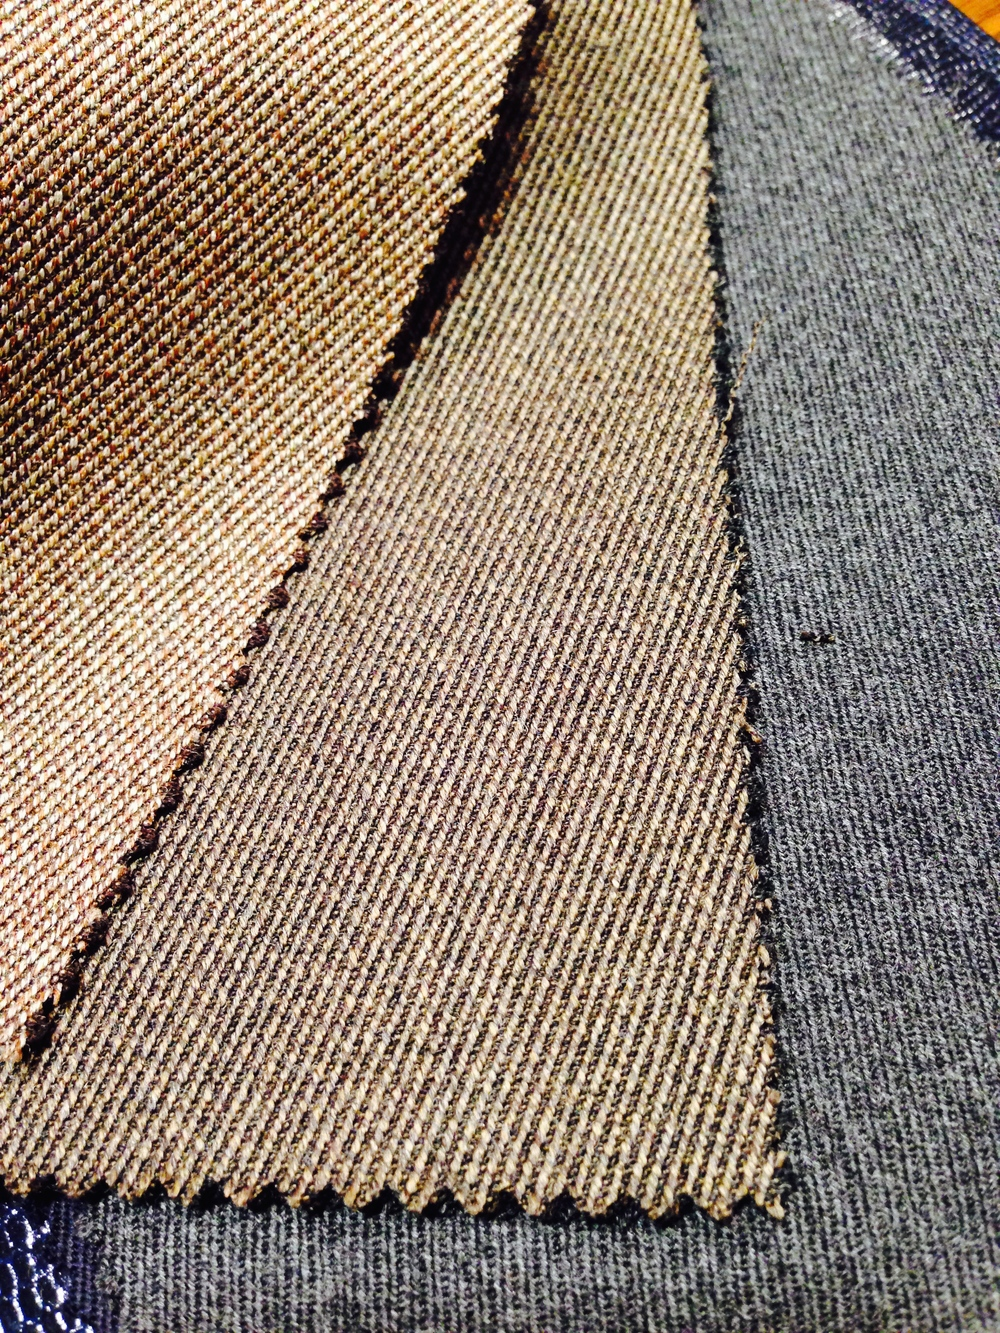 Whipcord in brownish shades and beefy cavalry twill in an ideal gray.